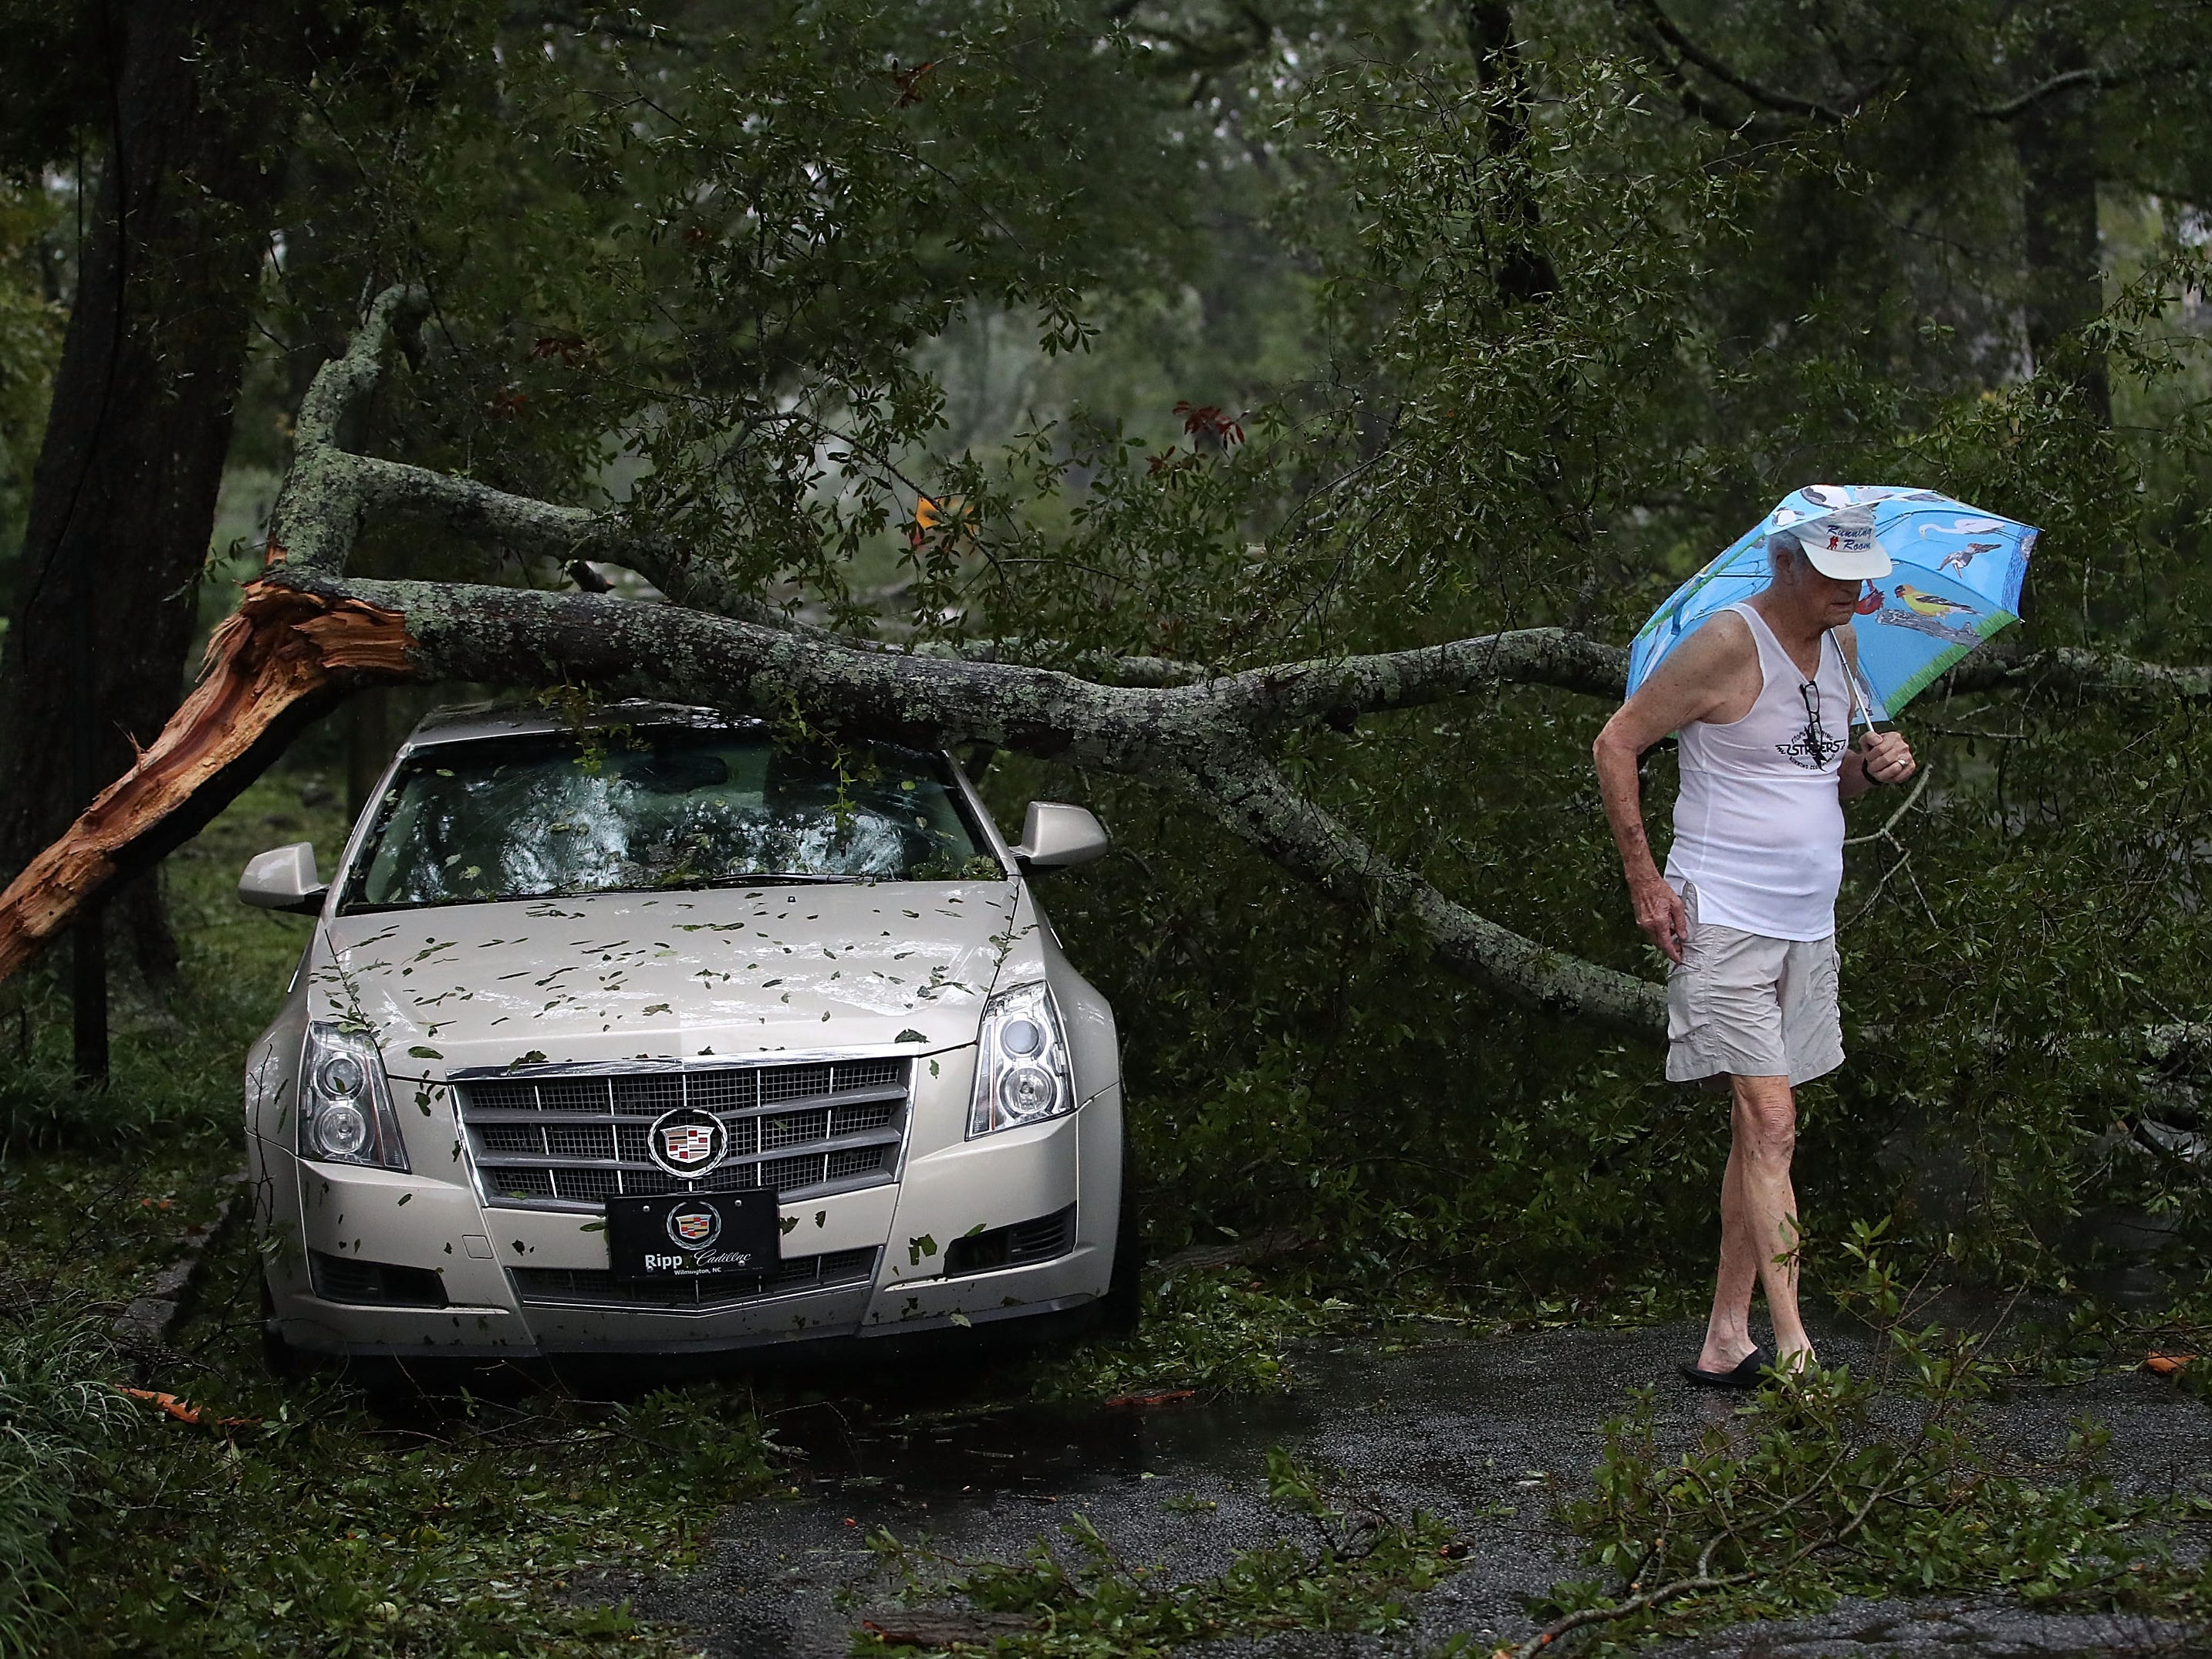 Robert Dolman walks past a car that has a large tree limb on it, Sunday, Sept. 16, 2018 in Wilmington, N.C.